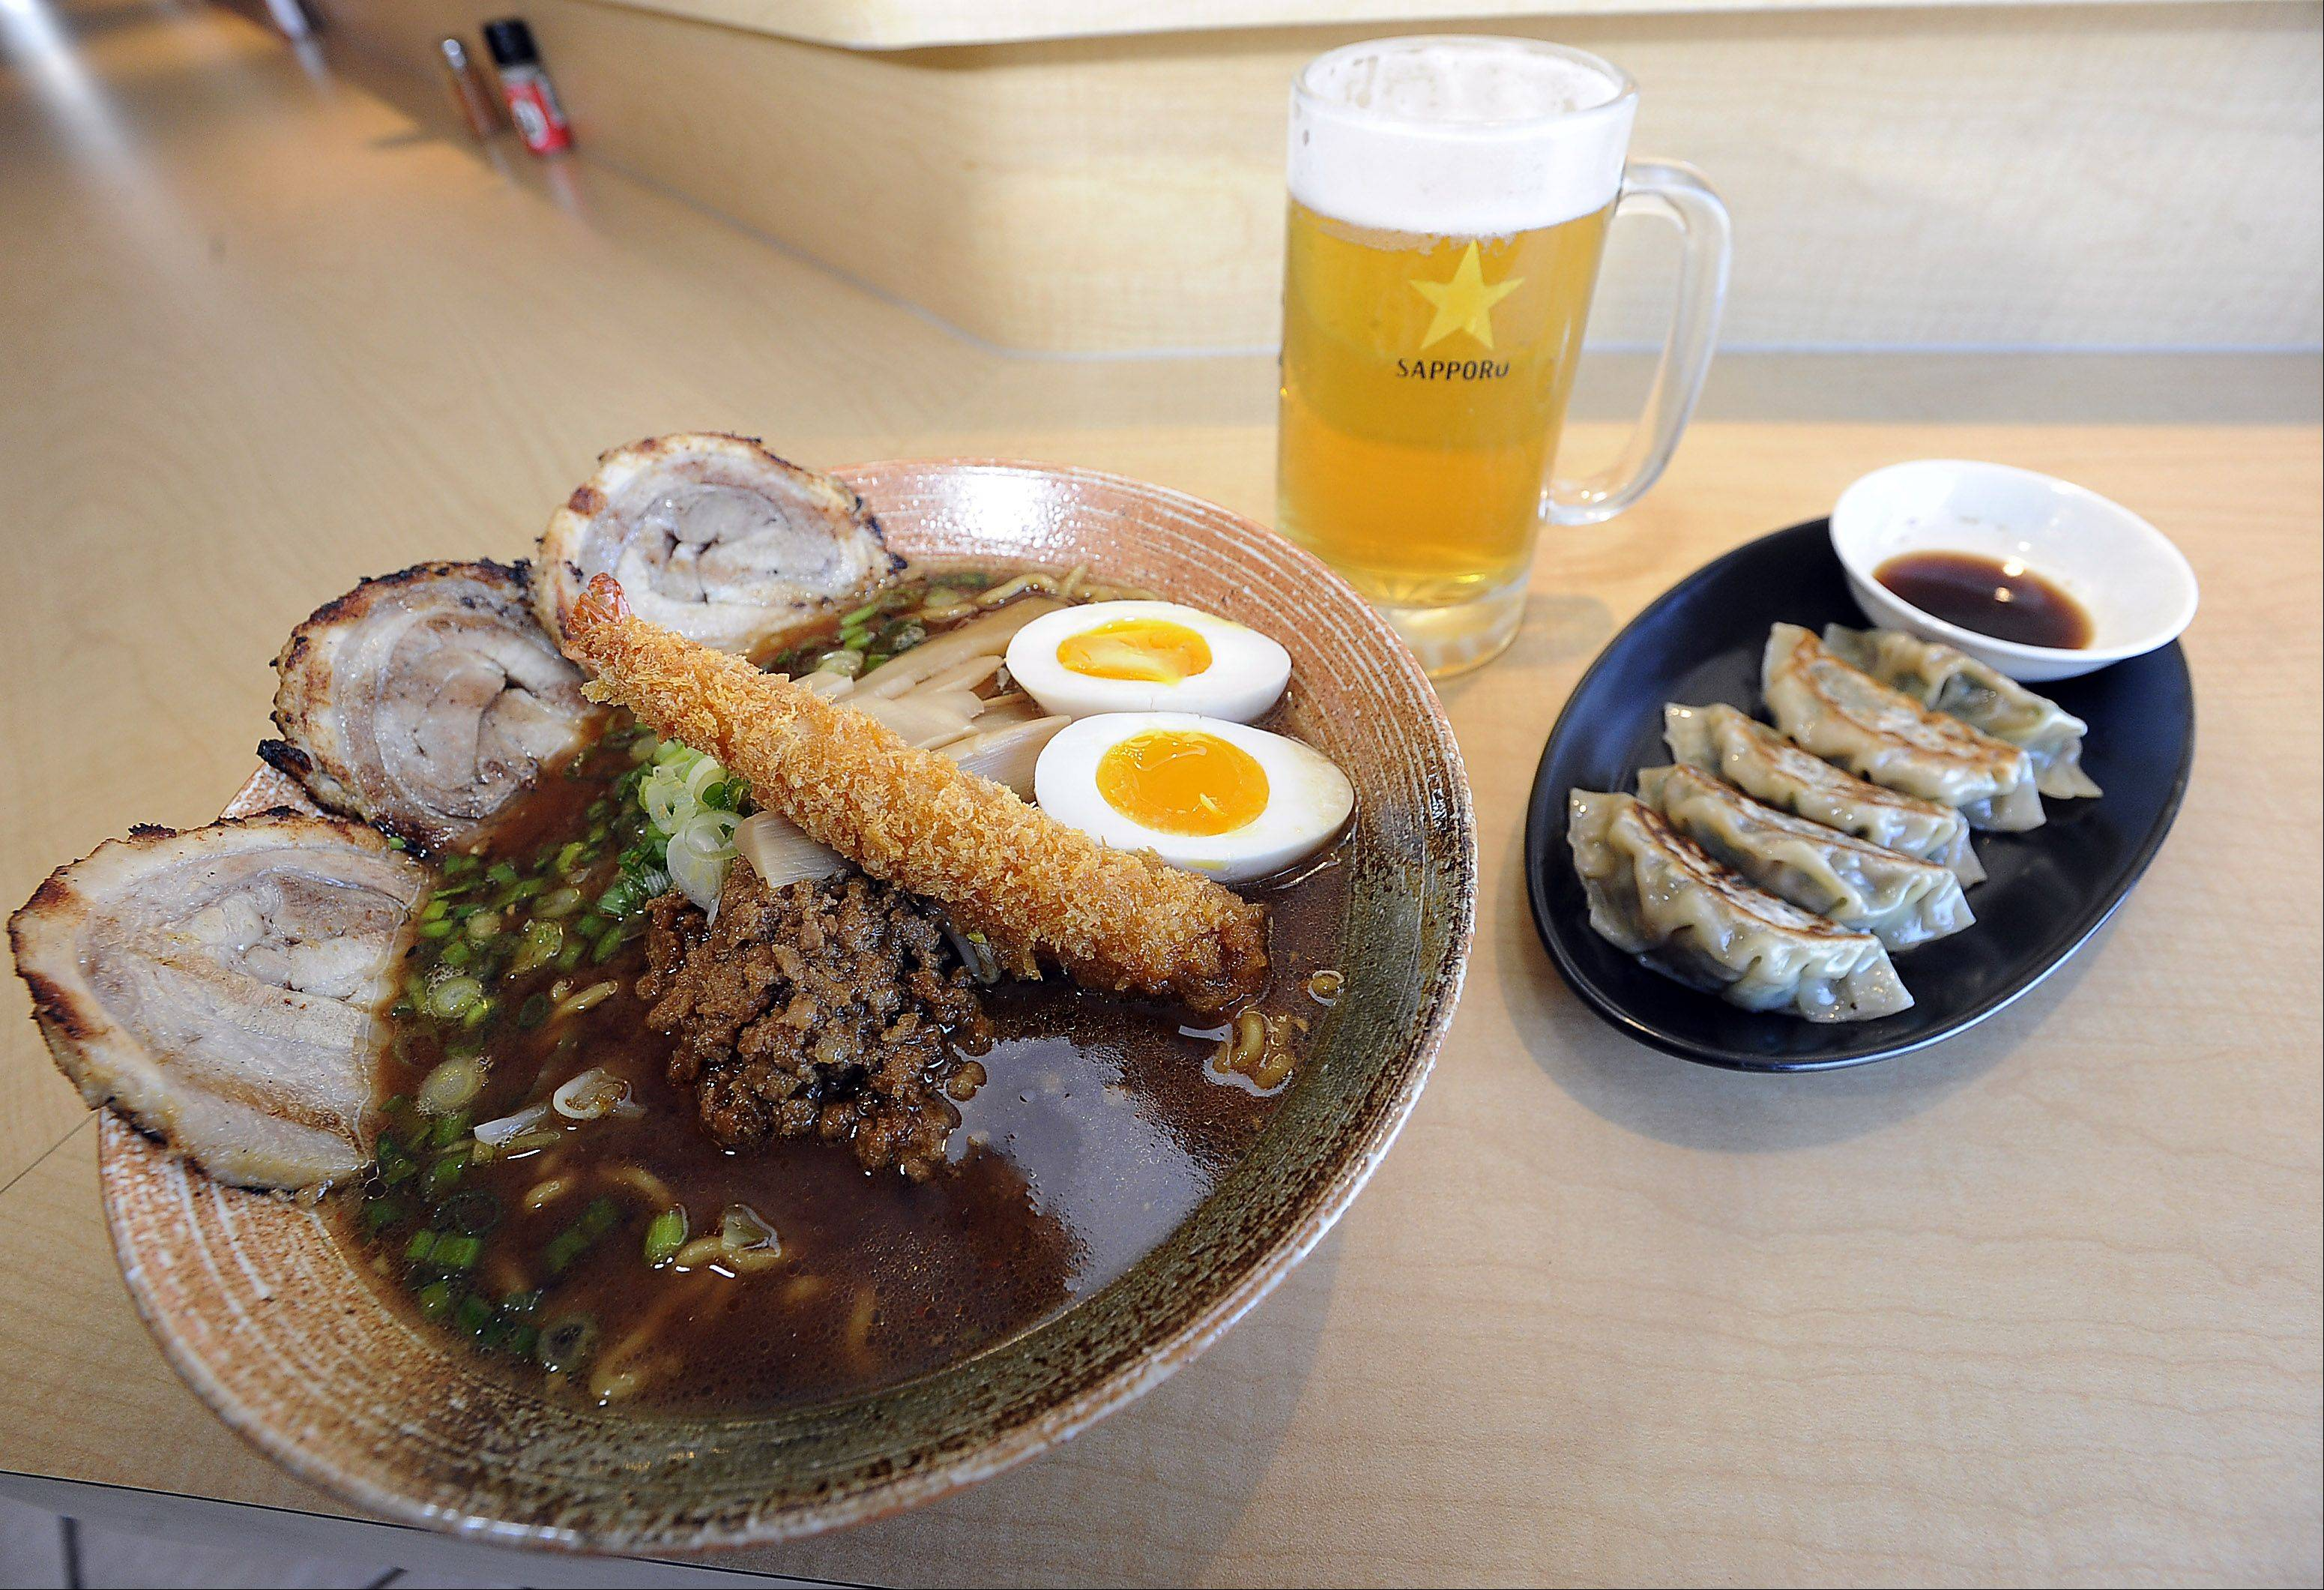 Nagoya-style mame miso with egg gyoza is a staple at Mount Prospect's Ramen Misoya.